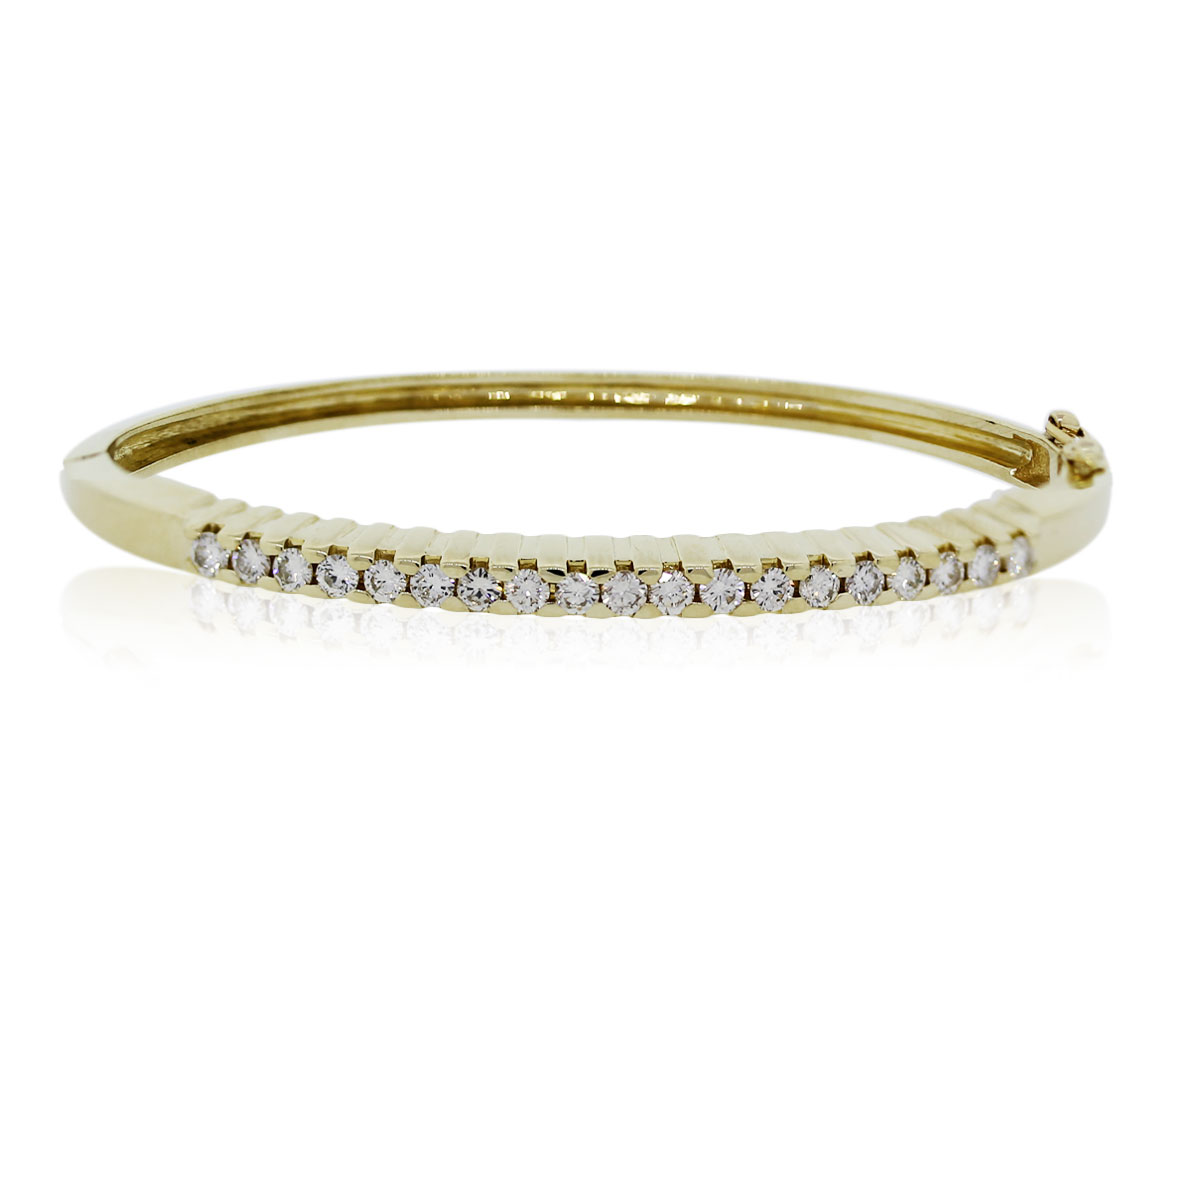 You are Viewing this Diamond Bangle Bracelet!